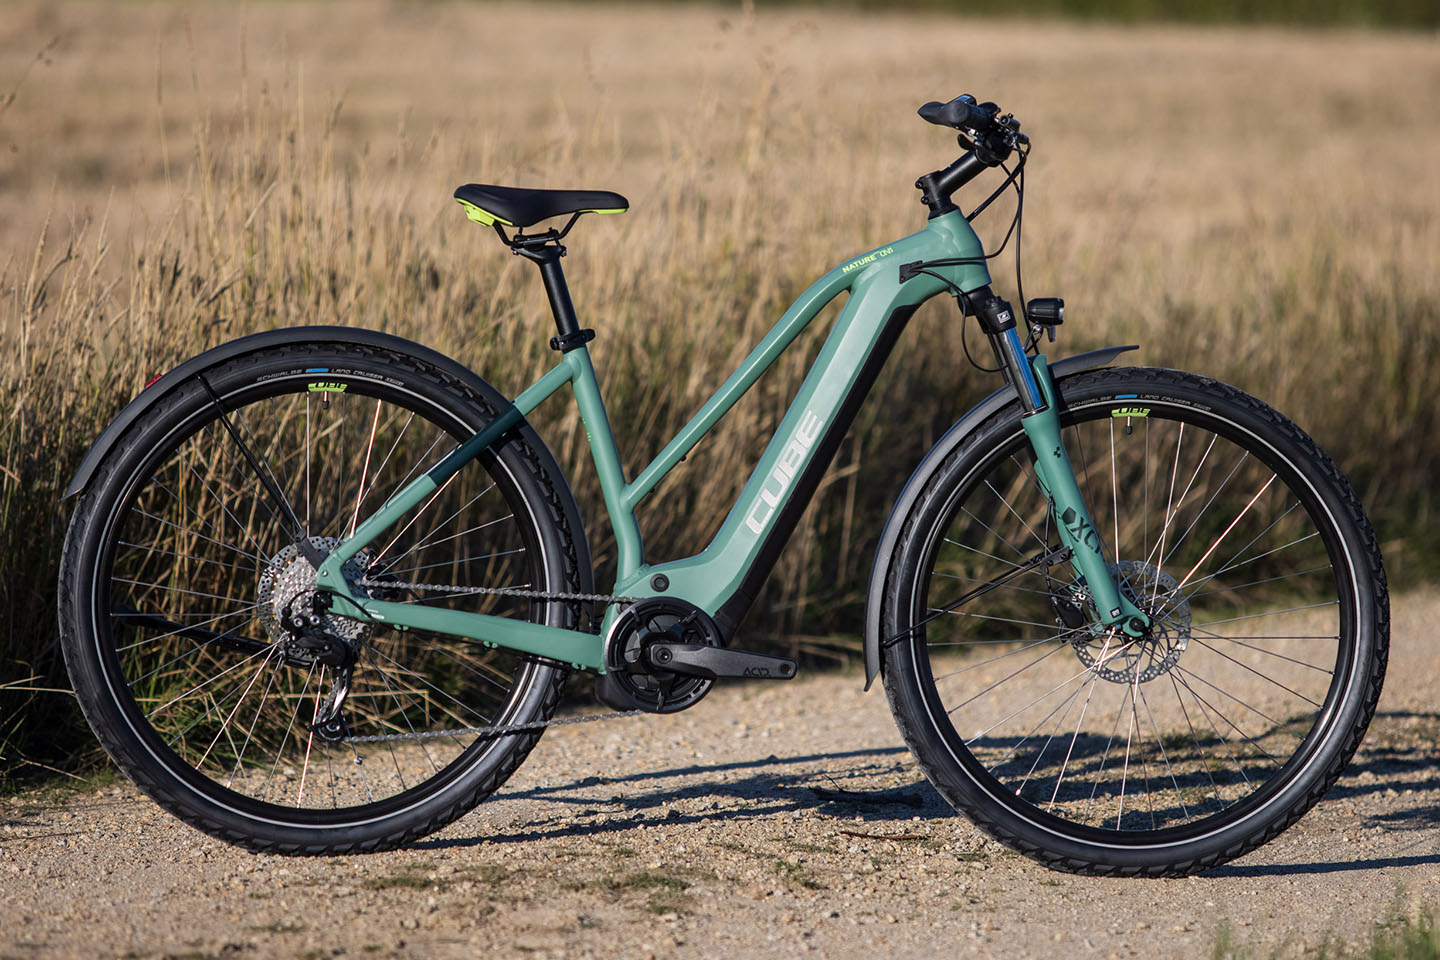 https://w8w5m3f8.stackpathcdn.com/22484/vtc-electrique-cube-nature-hybrid-one-allroad-500-ou-625wh-cadre-mixte.jpg